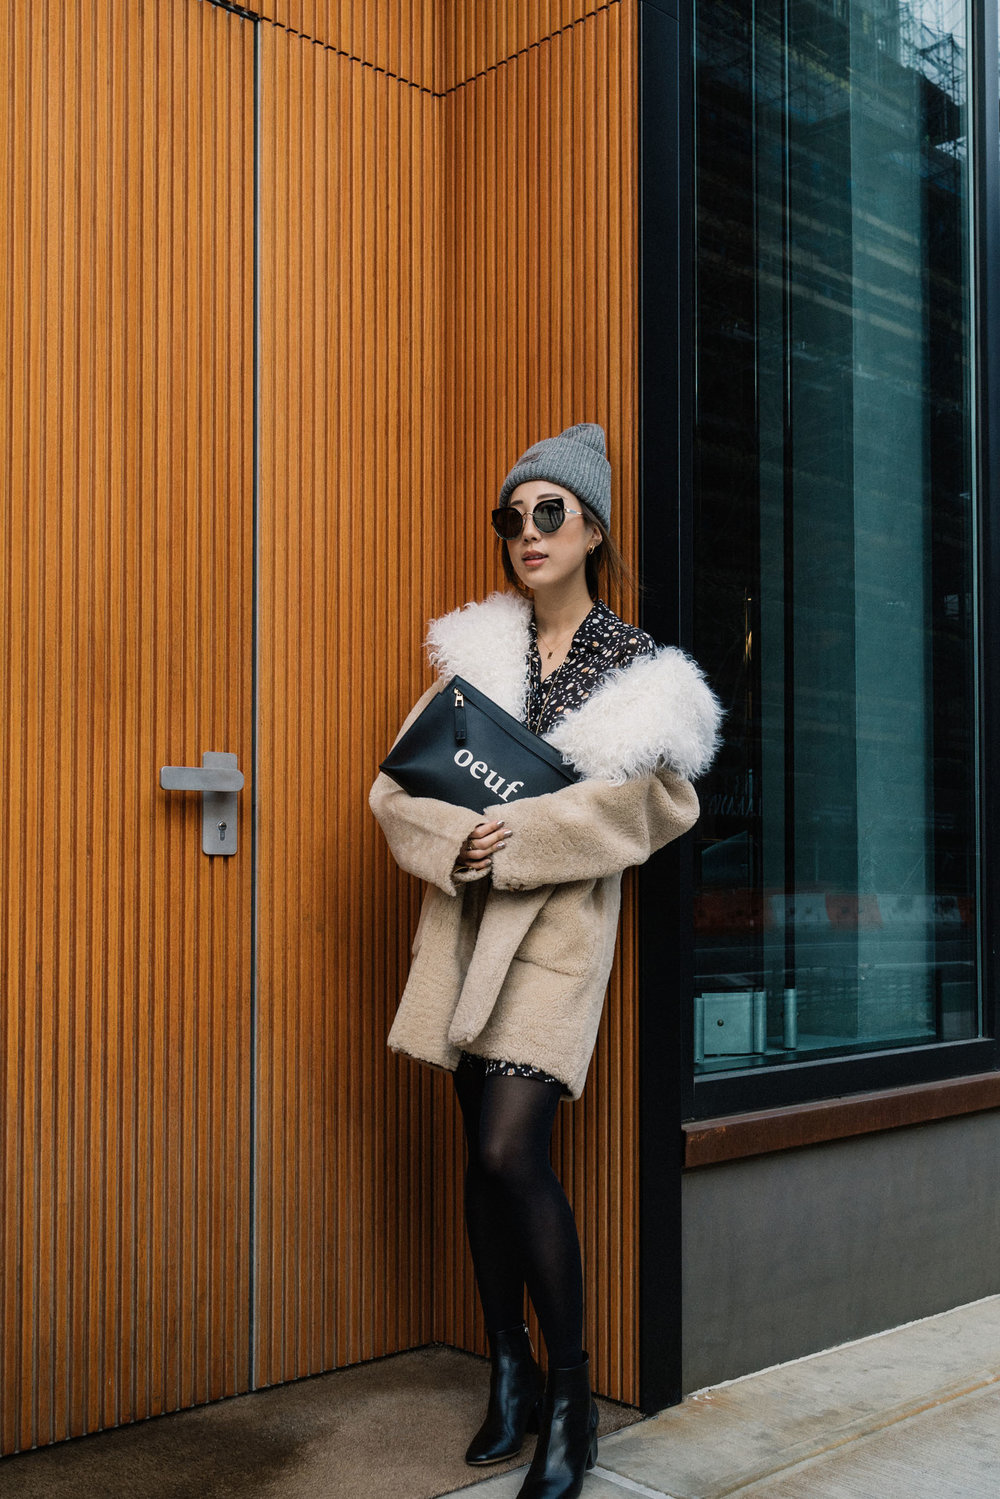 Ulla Johnson Coat ,  Sachin & Babi Dress , The Row Boots, Loewe Clutch,  Gentle Monster x Moooi Sunglasses , Acne Studios Beanie